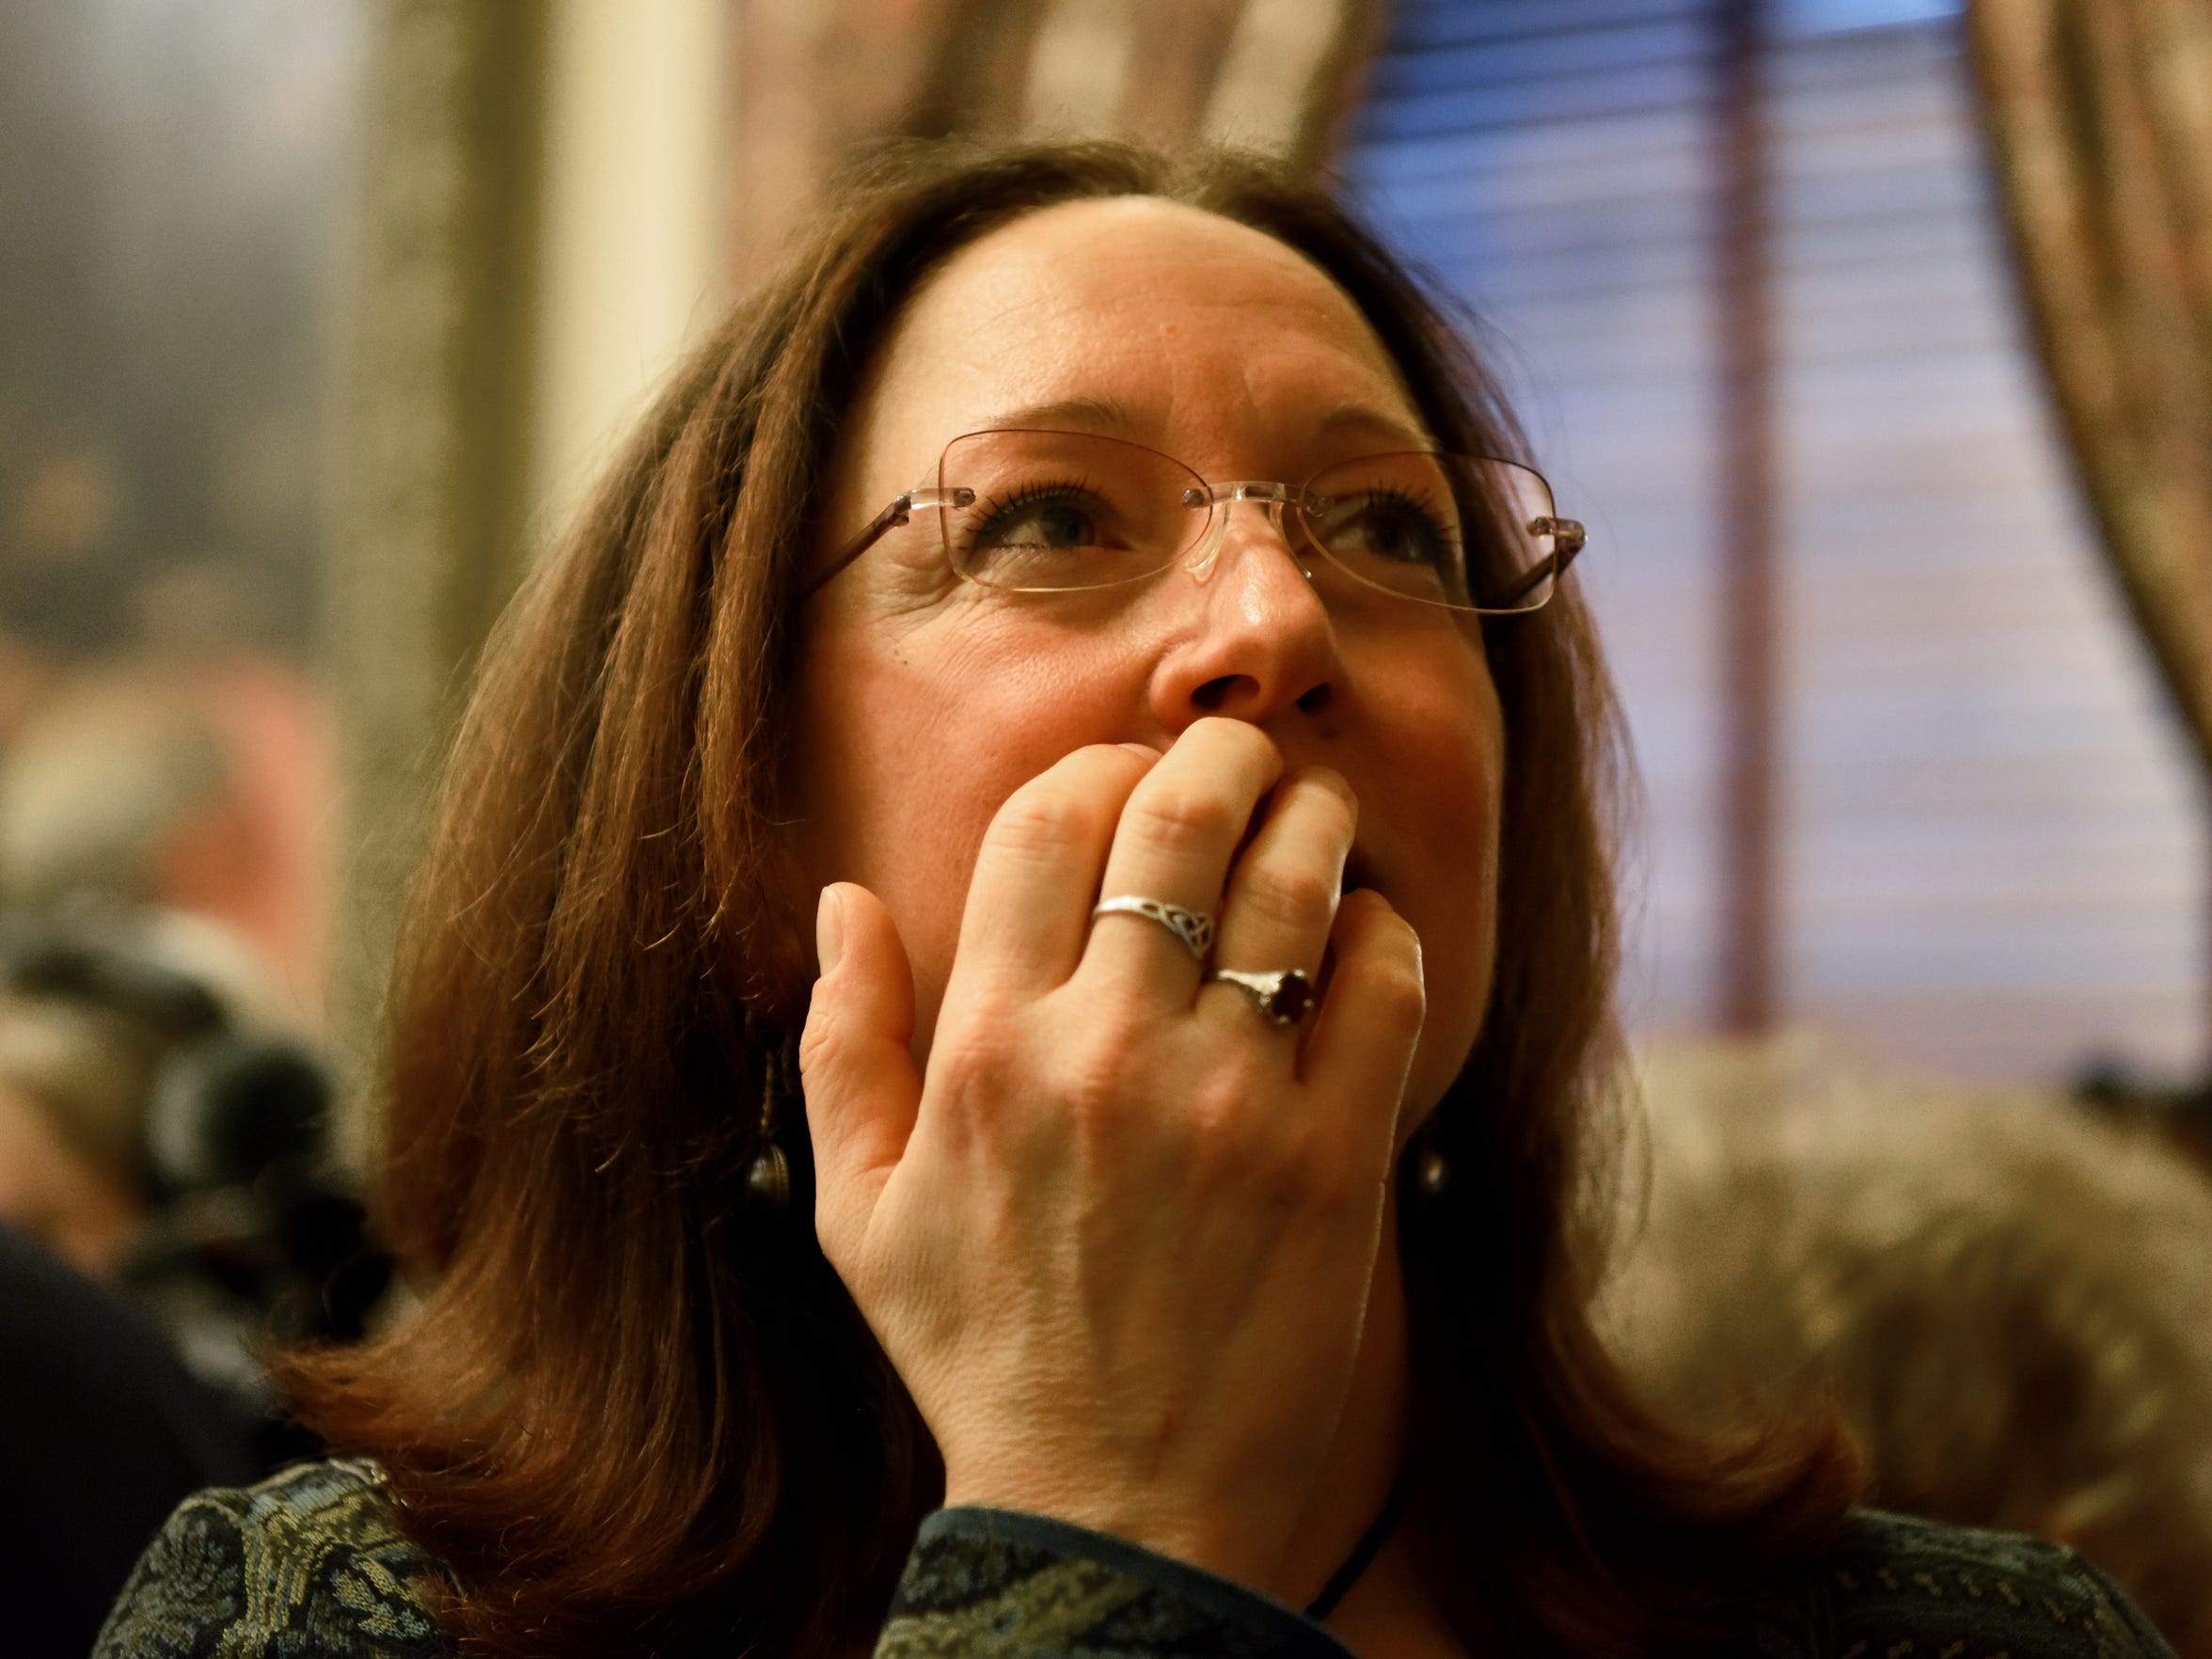 Adoptee Theresa Carroll of East Islip, NY ponders what